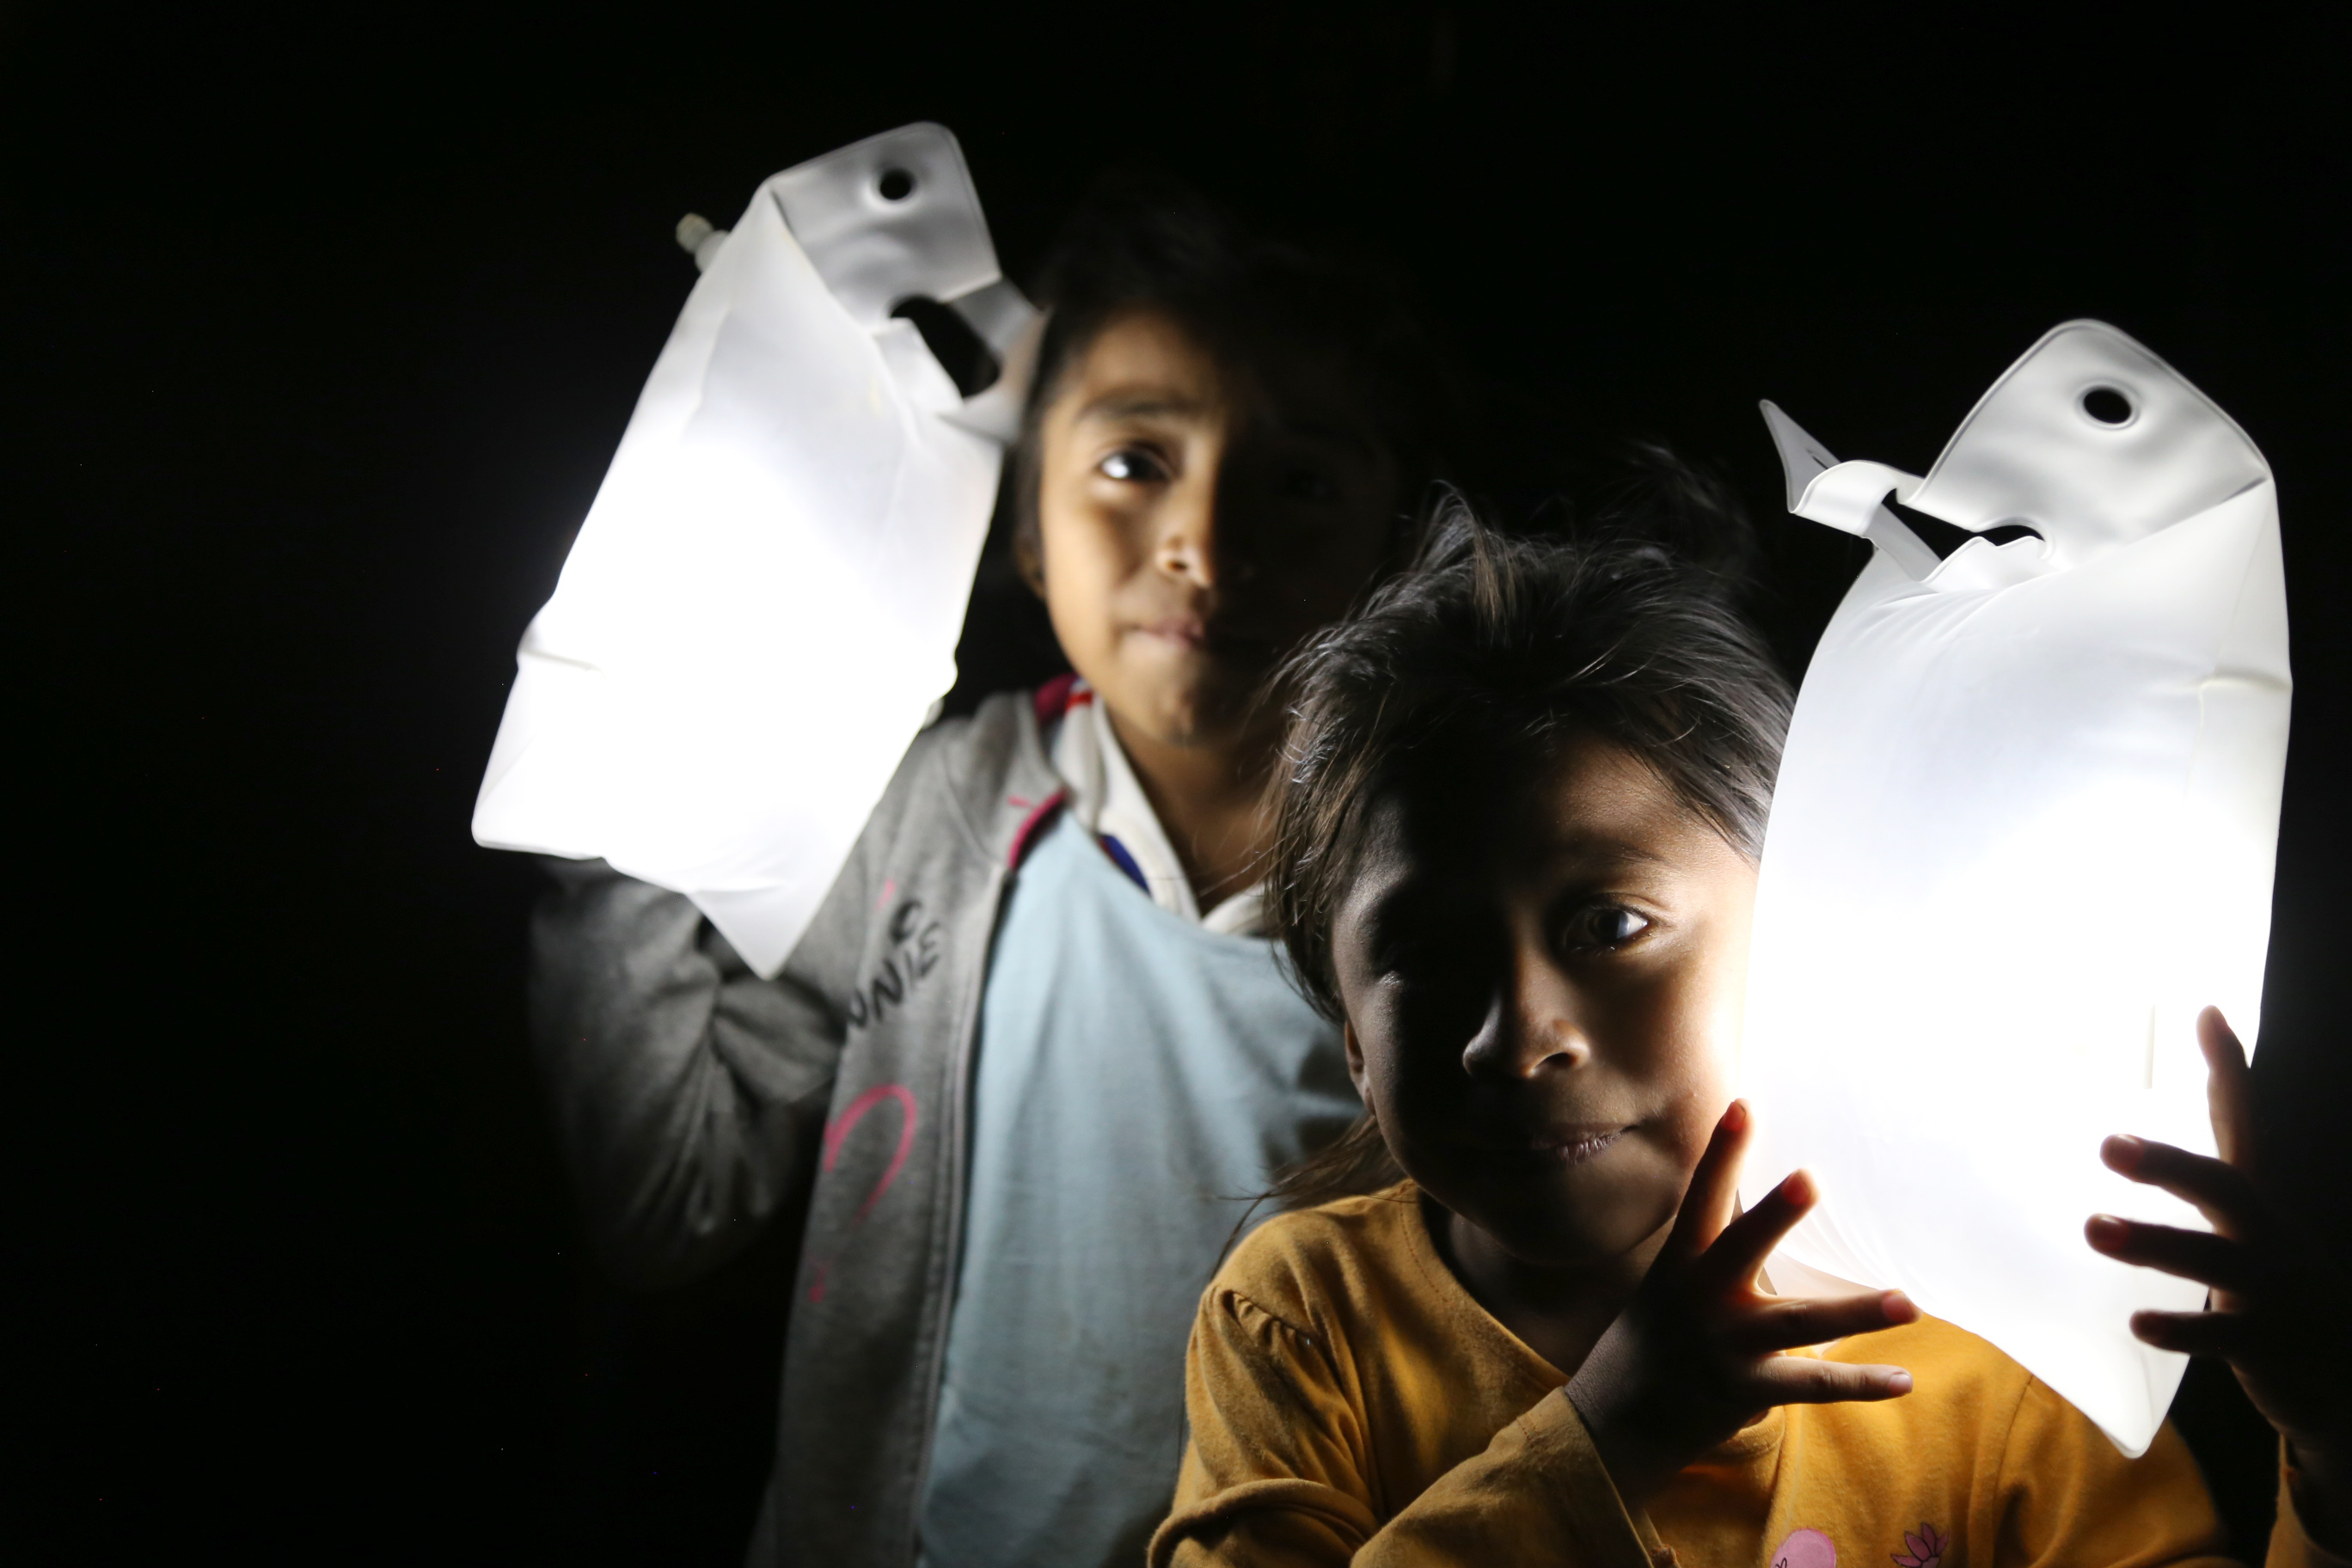 Children showing the Large size solar lights in the dark